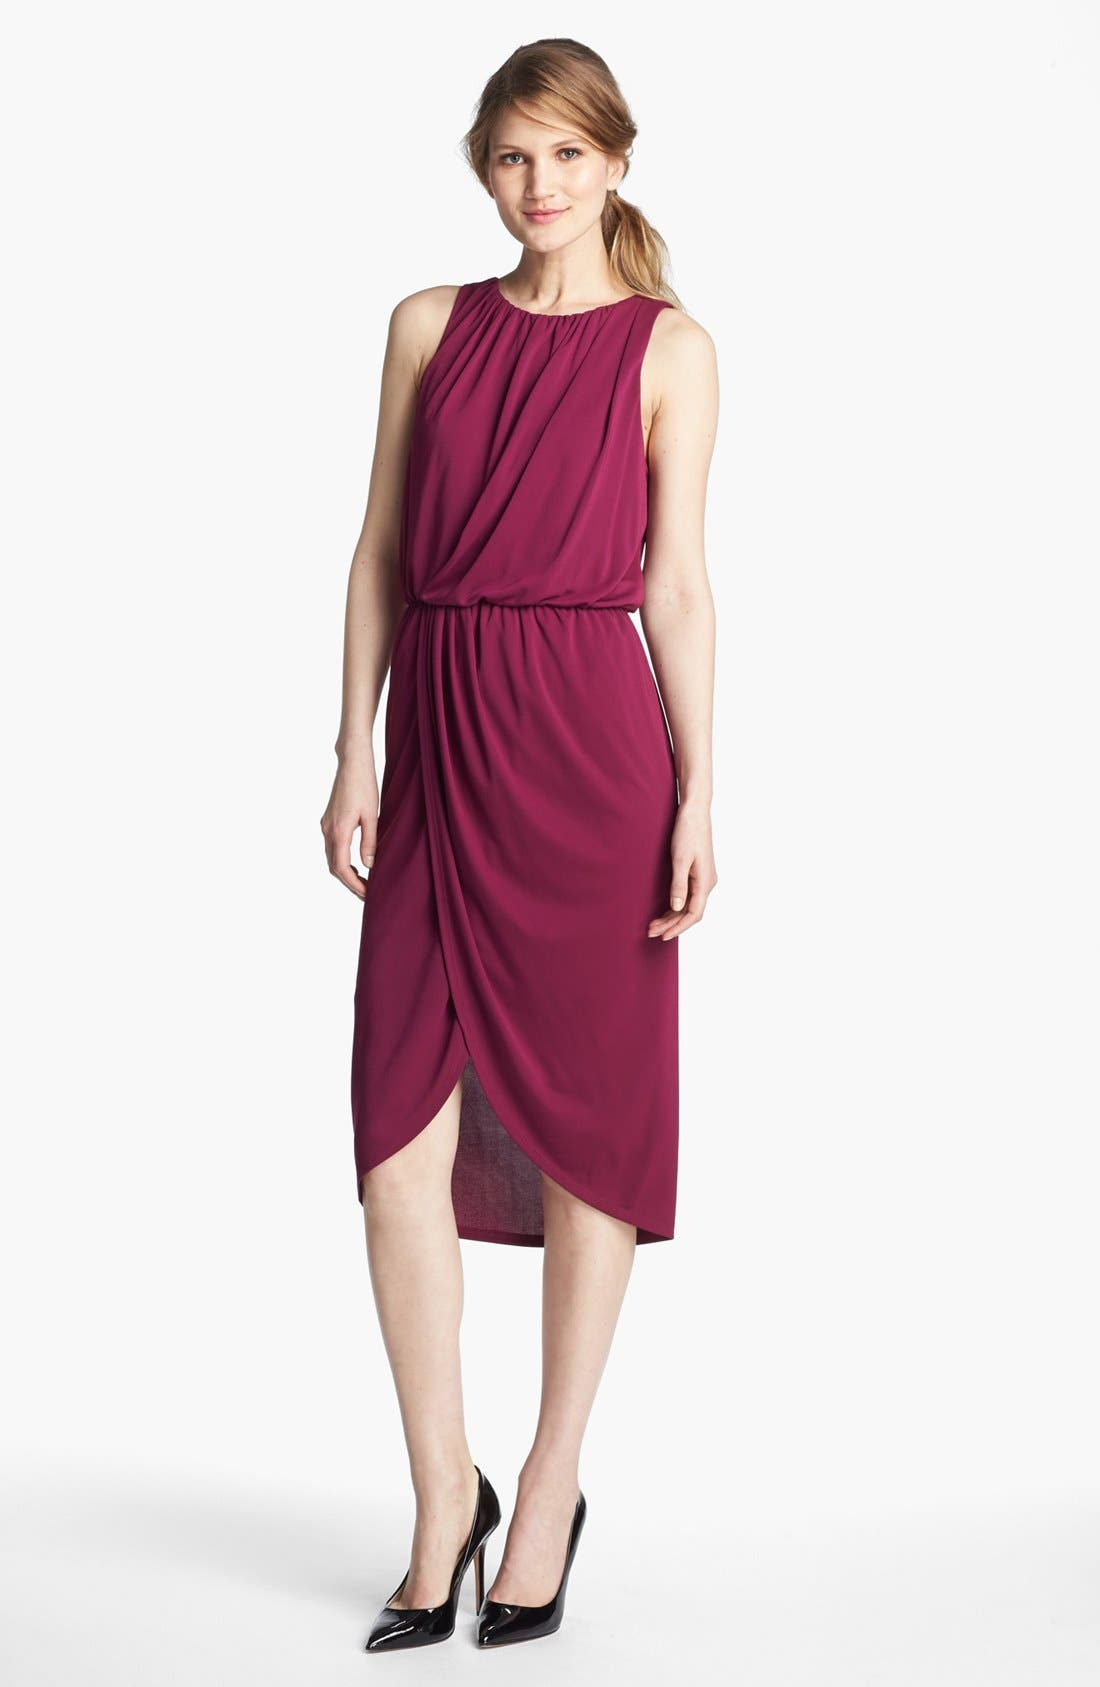 Alternate Image 1 Selected - Adrianna Papell Sleeveless Faux Wrap Dress